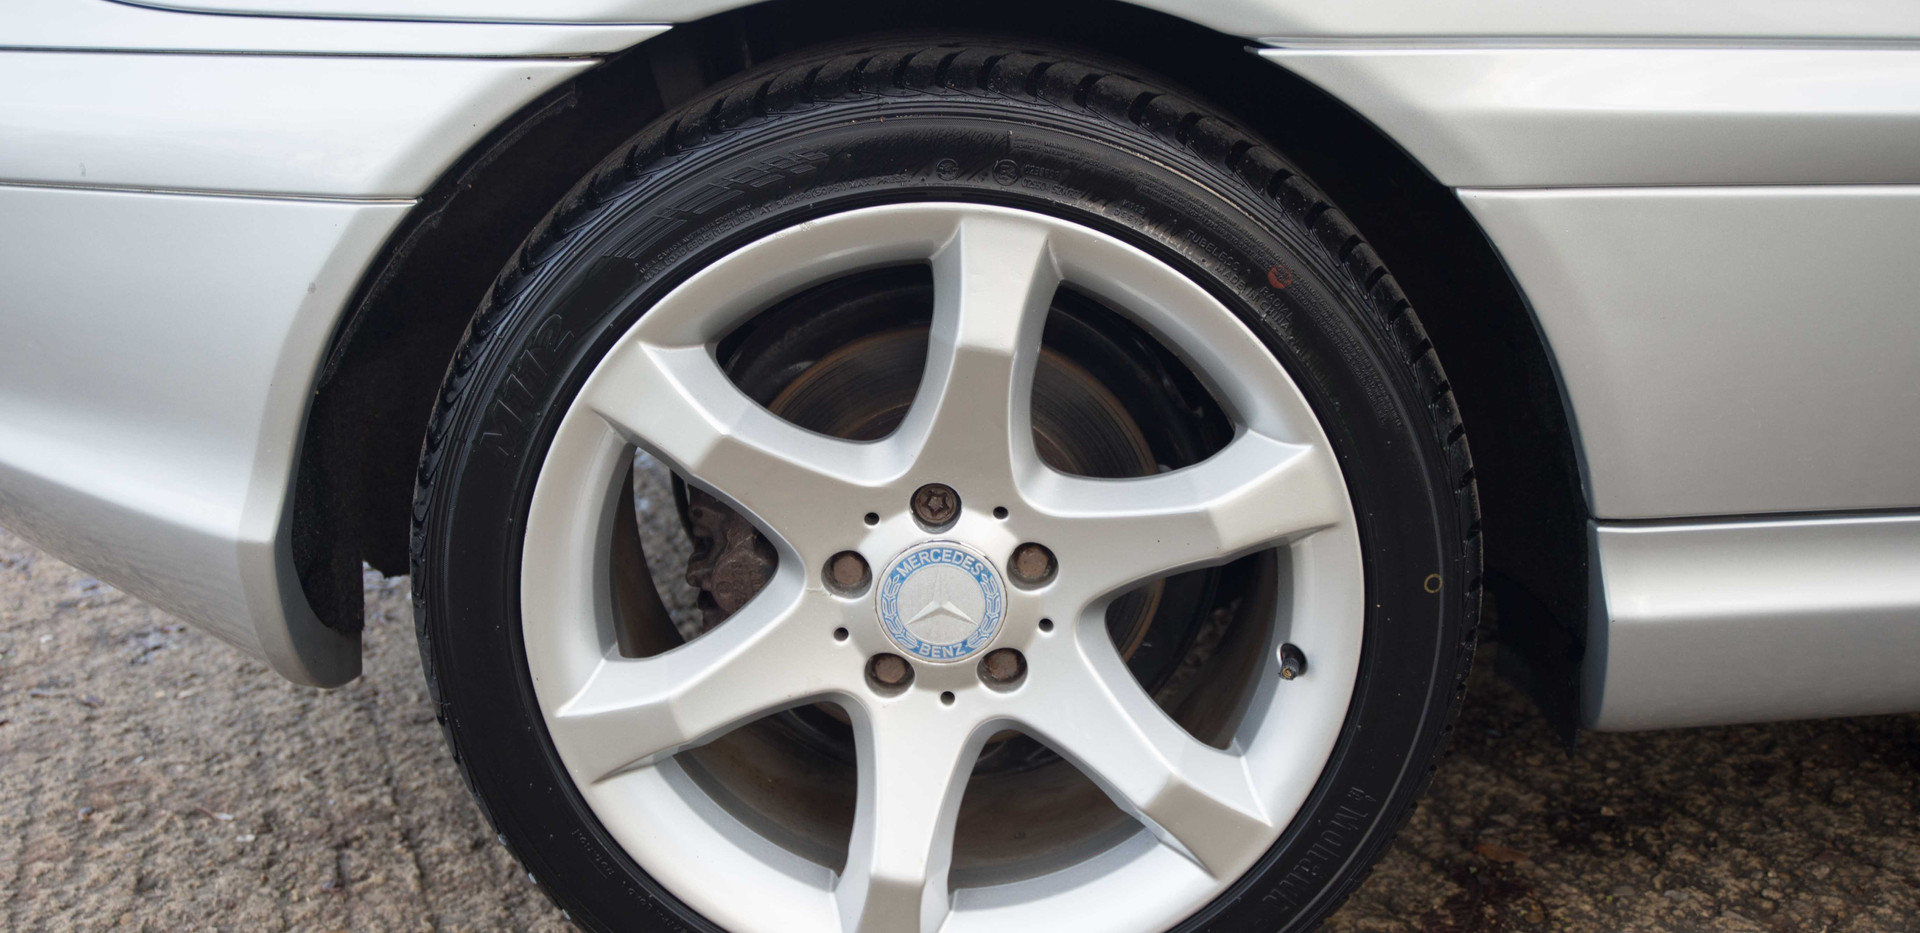 Meercedes C200 For Sale UK London  (27 o